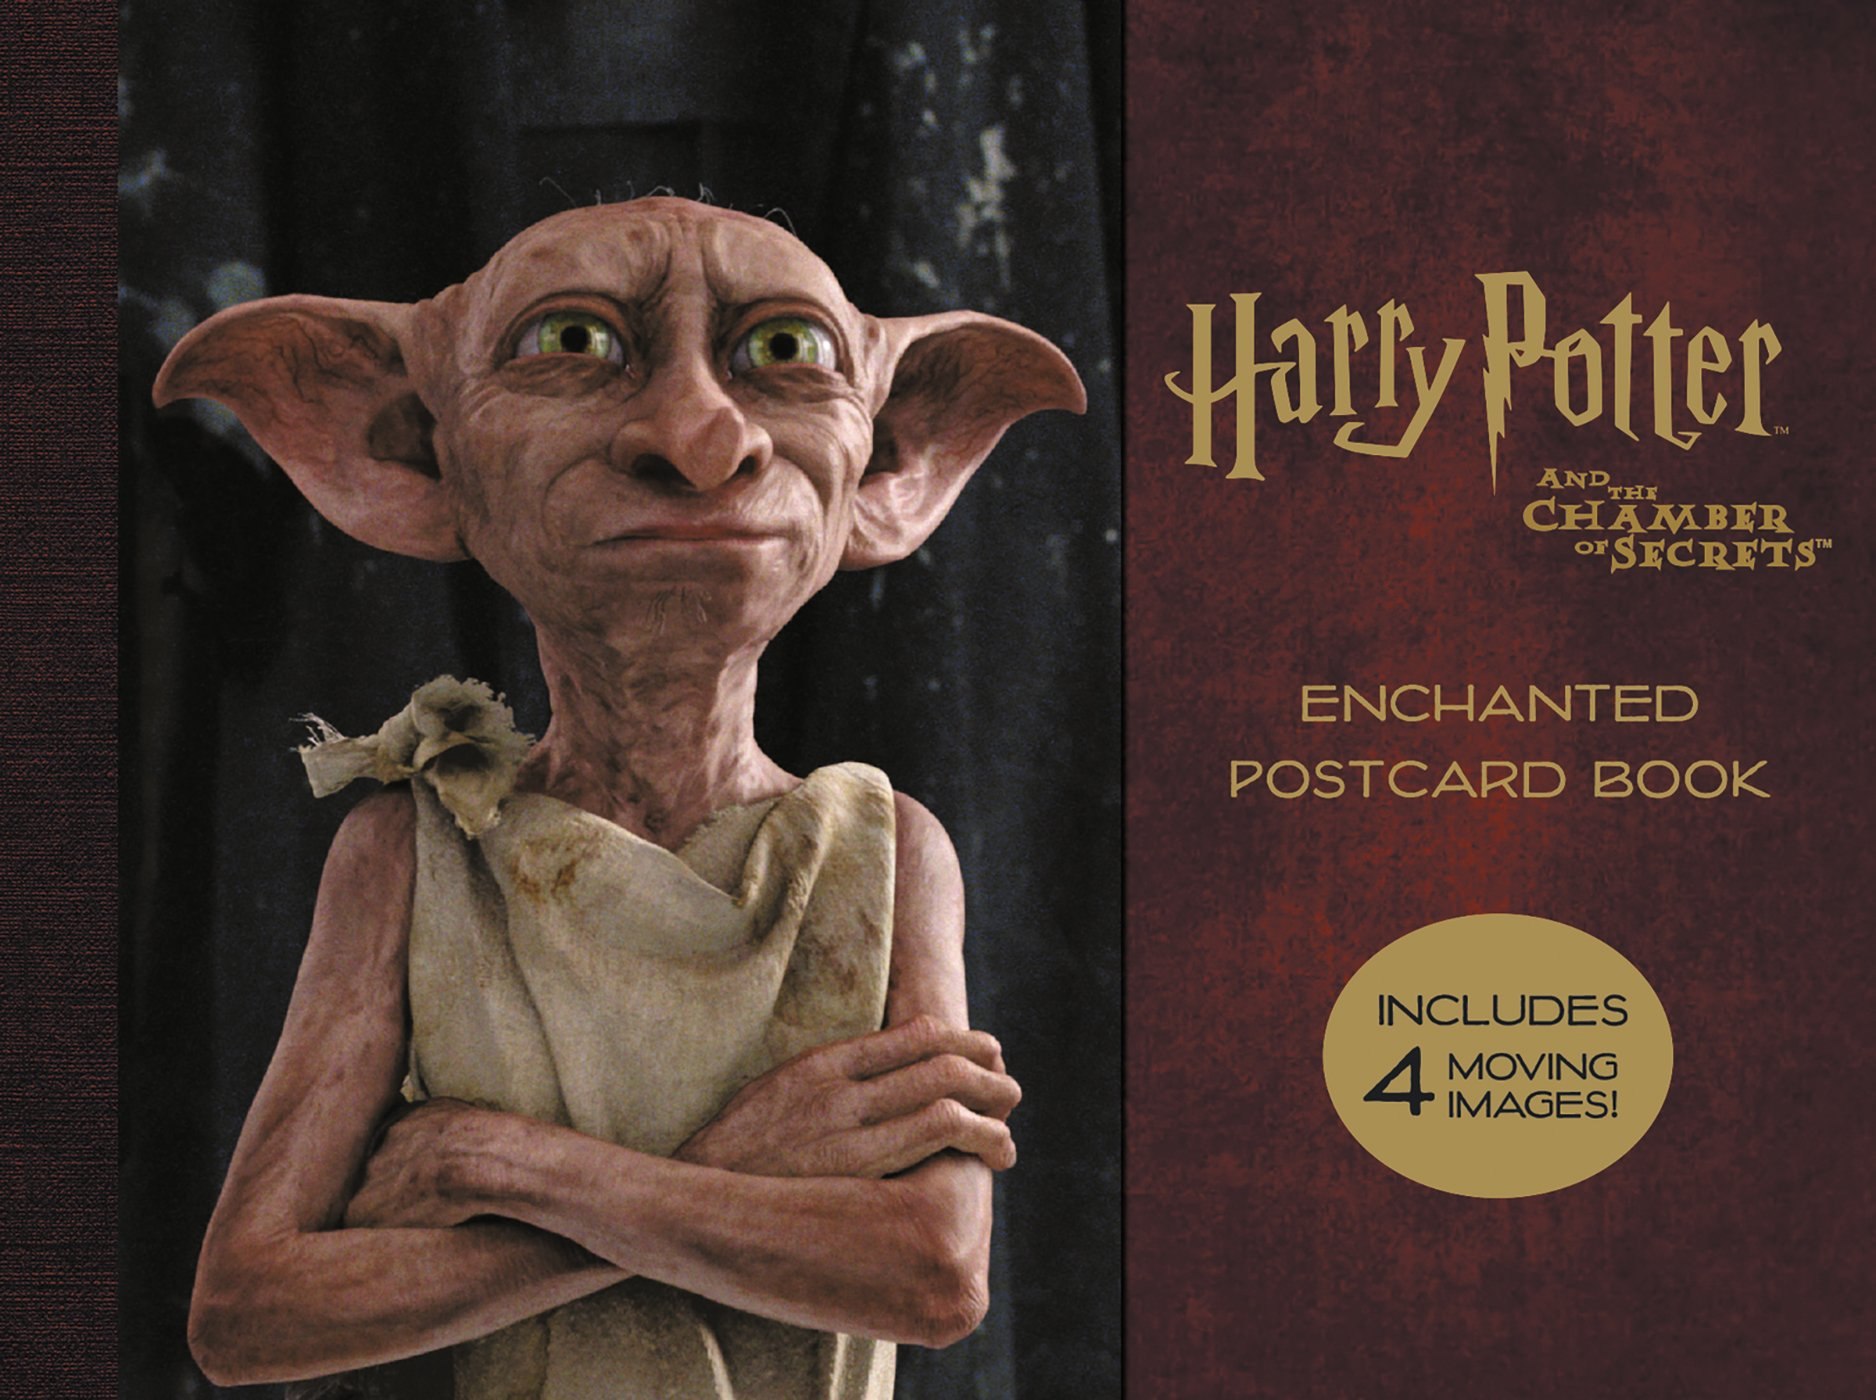 Harry Potter and the Chamber of Secrets Enchanted Postcard Book harry potter the chamber of secrets